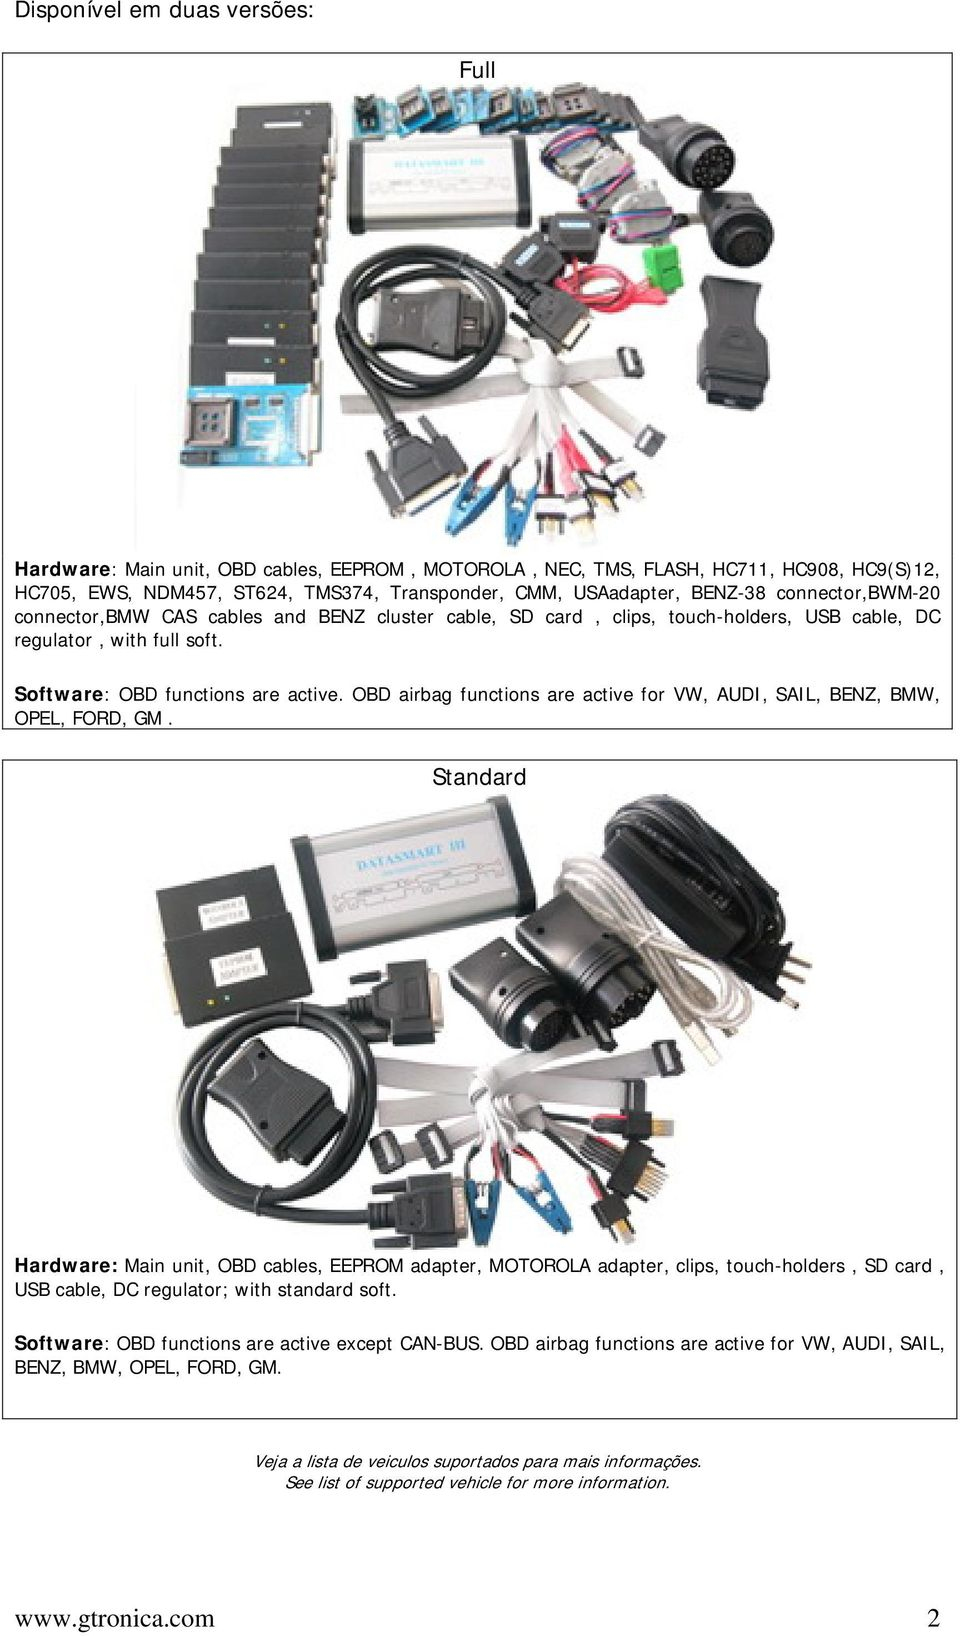 OBD airbag functions are active for VW, AUDI, SAIL, BENZ, BMW, OPEL, FORD, GM.